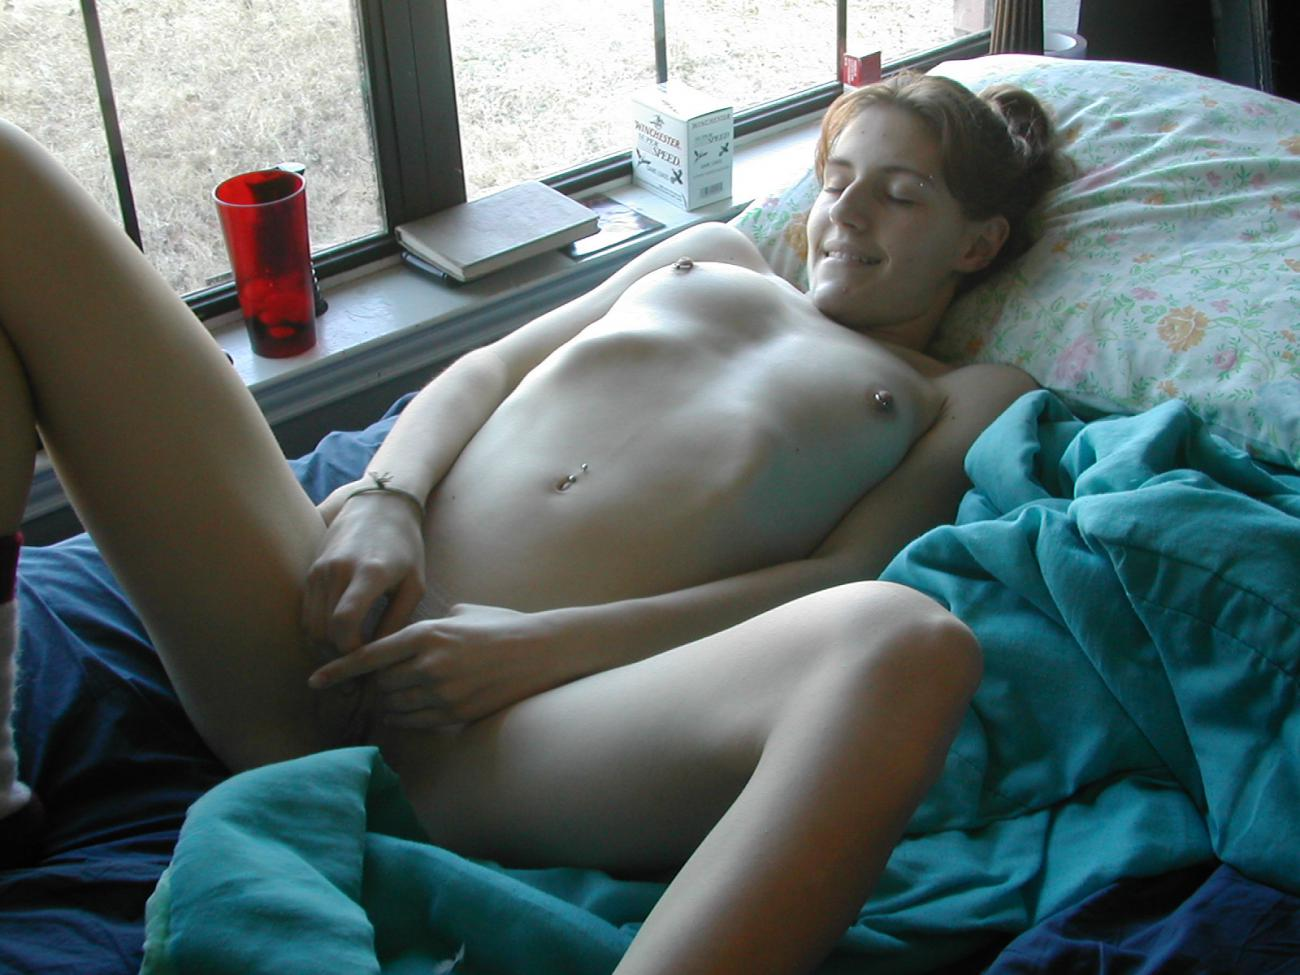 reality tv girls nude pictures